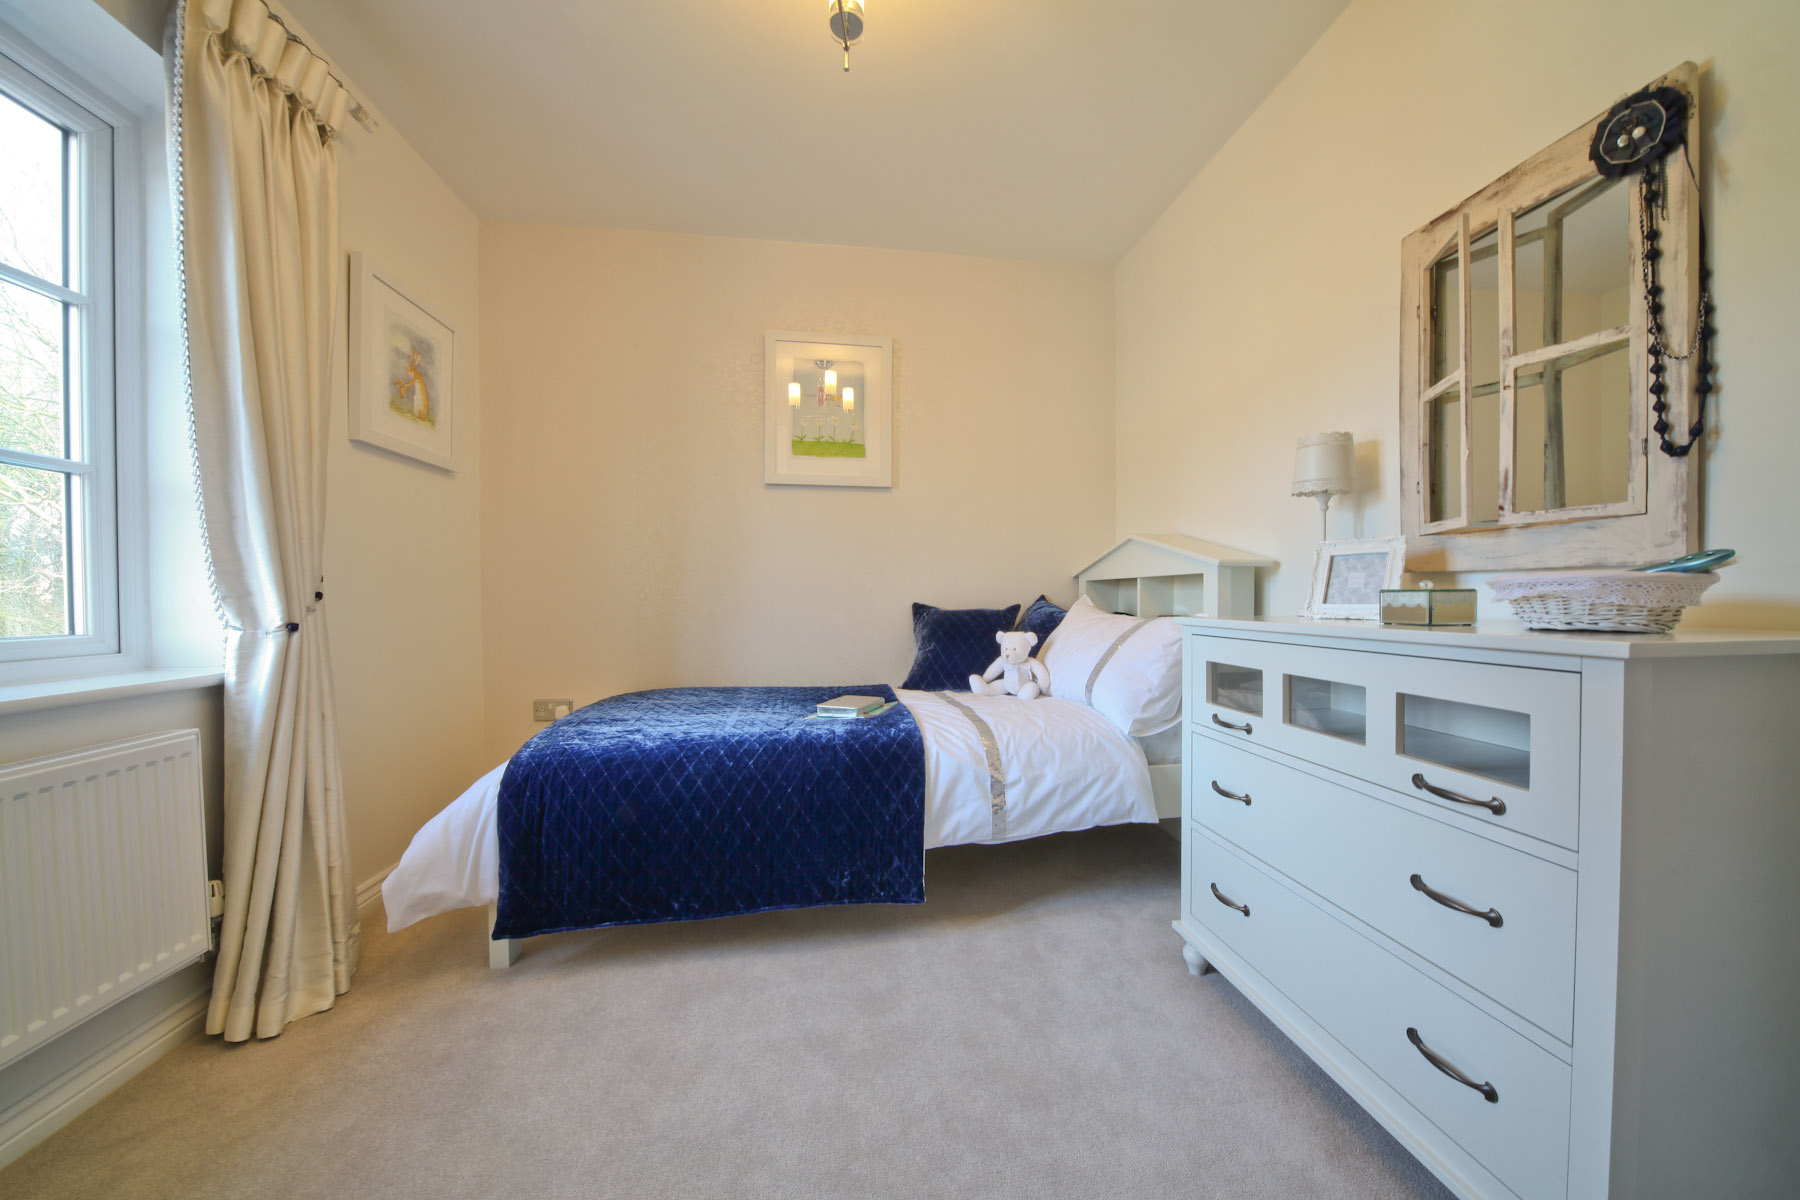 Taylor Wimpey typical 4th bedroom